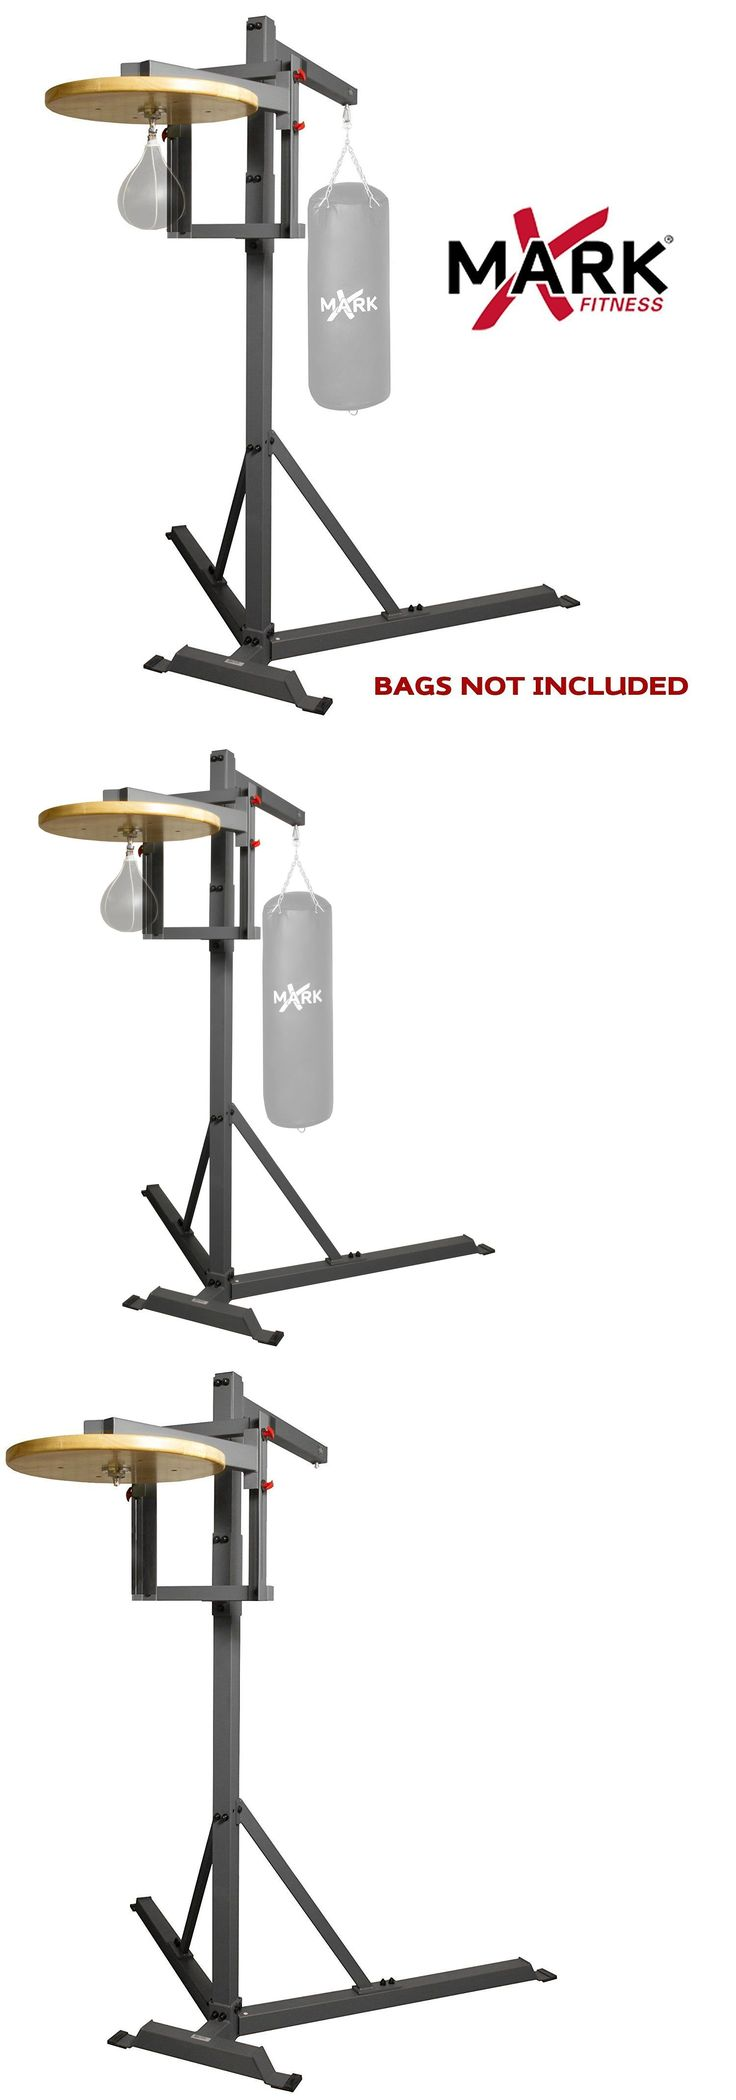 Bag Stands Platforms and Accs 179785: Xmark Commercial Heavy Bag Stand With Speed Bag Platform Boxing Training Xm-2848 -> BUY IT NOW ONLY: $739 on eBay!